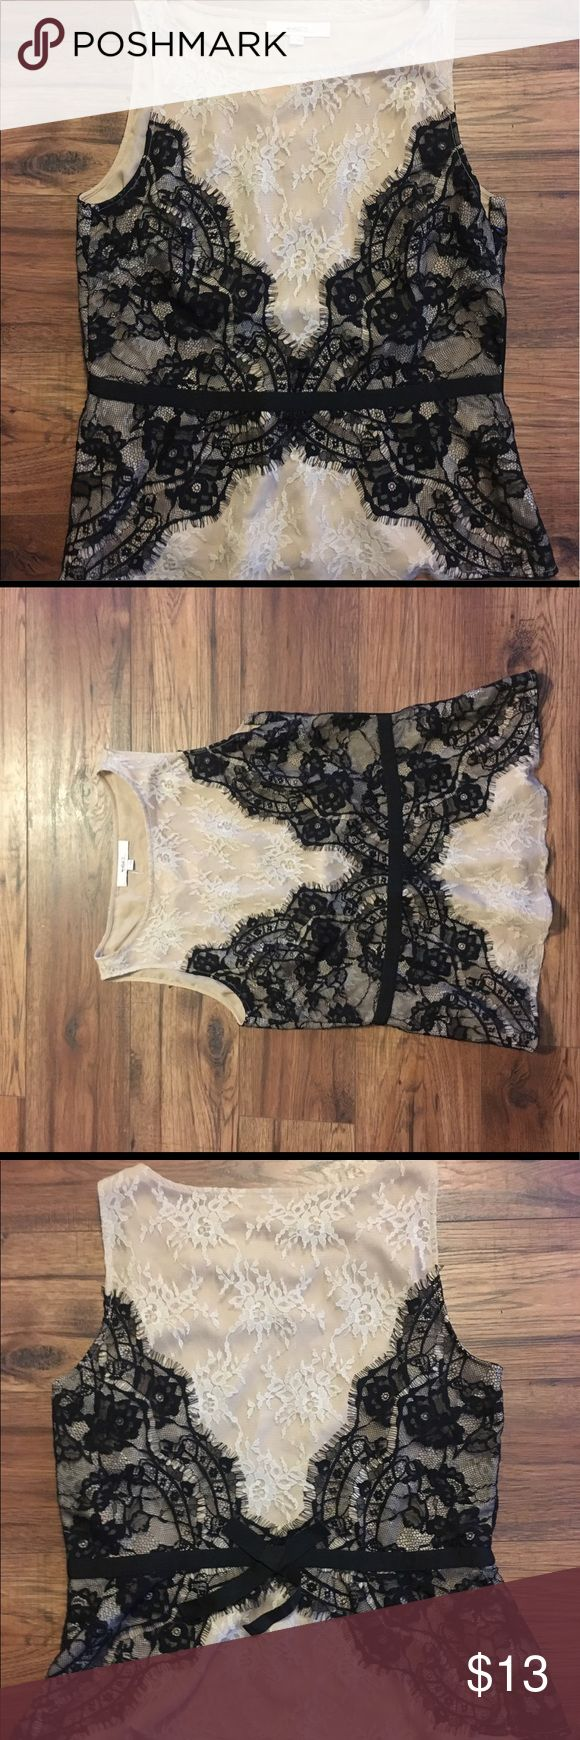 BRAND NEW WITH TAGS💗ANNE TAYLOR LOFT BLOUSE Beautiful brand new with tags! ANNE TAYLOR LOFT LACE BLOUSE. No stains or rips never worn. Size 8. sorry i cannot model because it is not my size!🌟🌟🌟 LOFT Tops Blouses